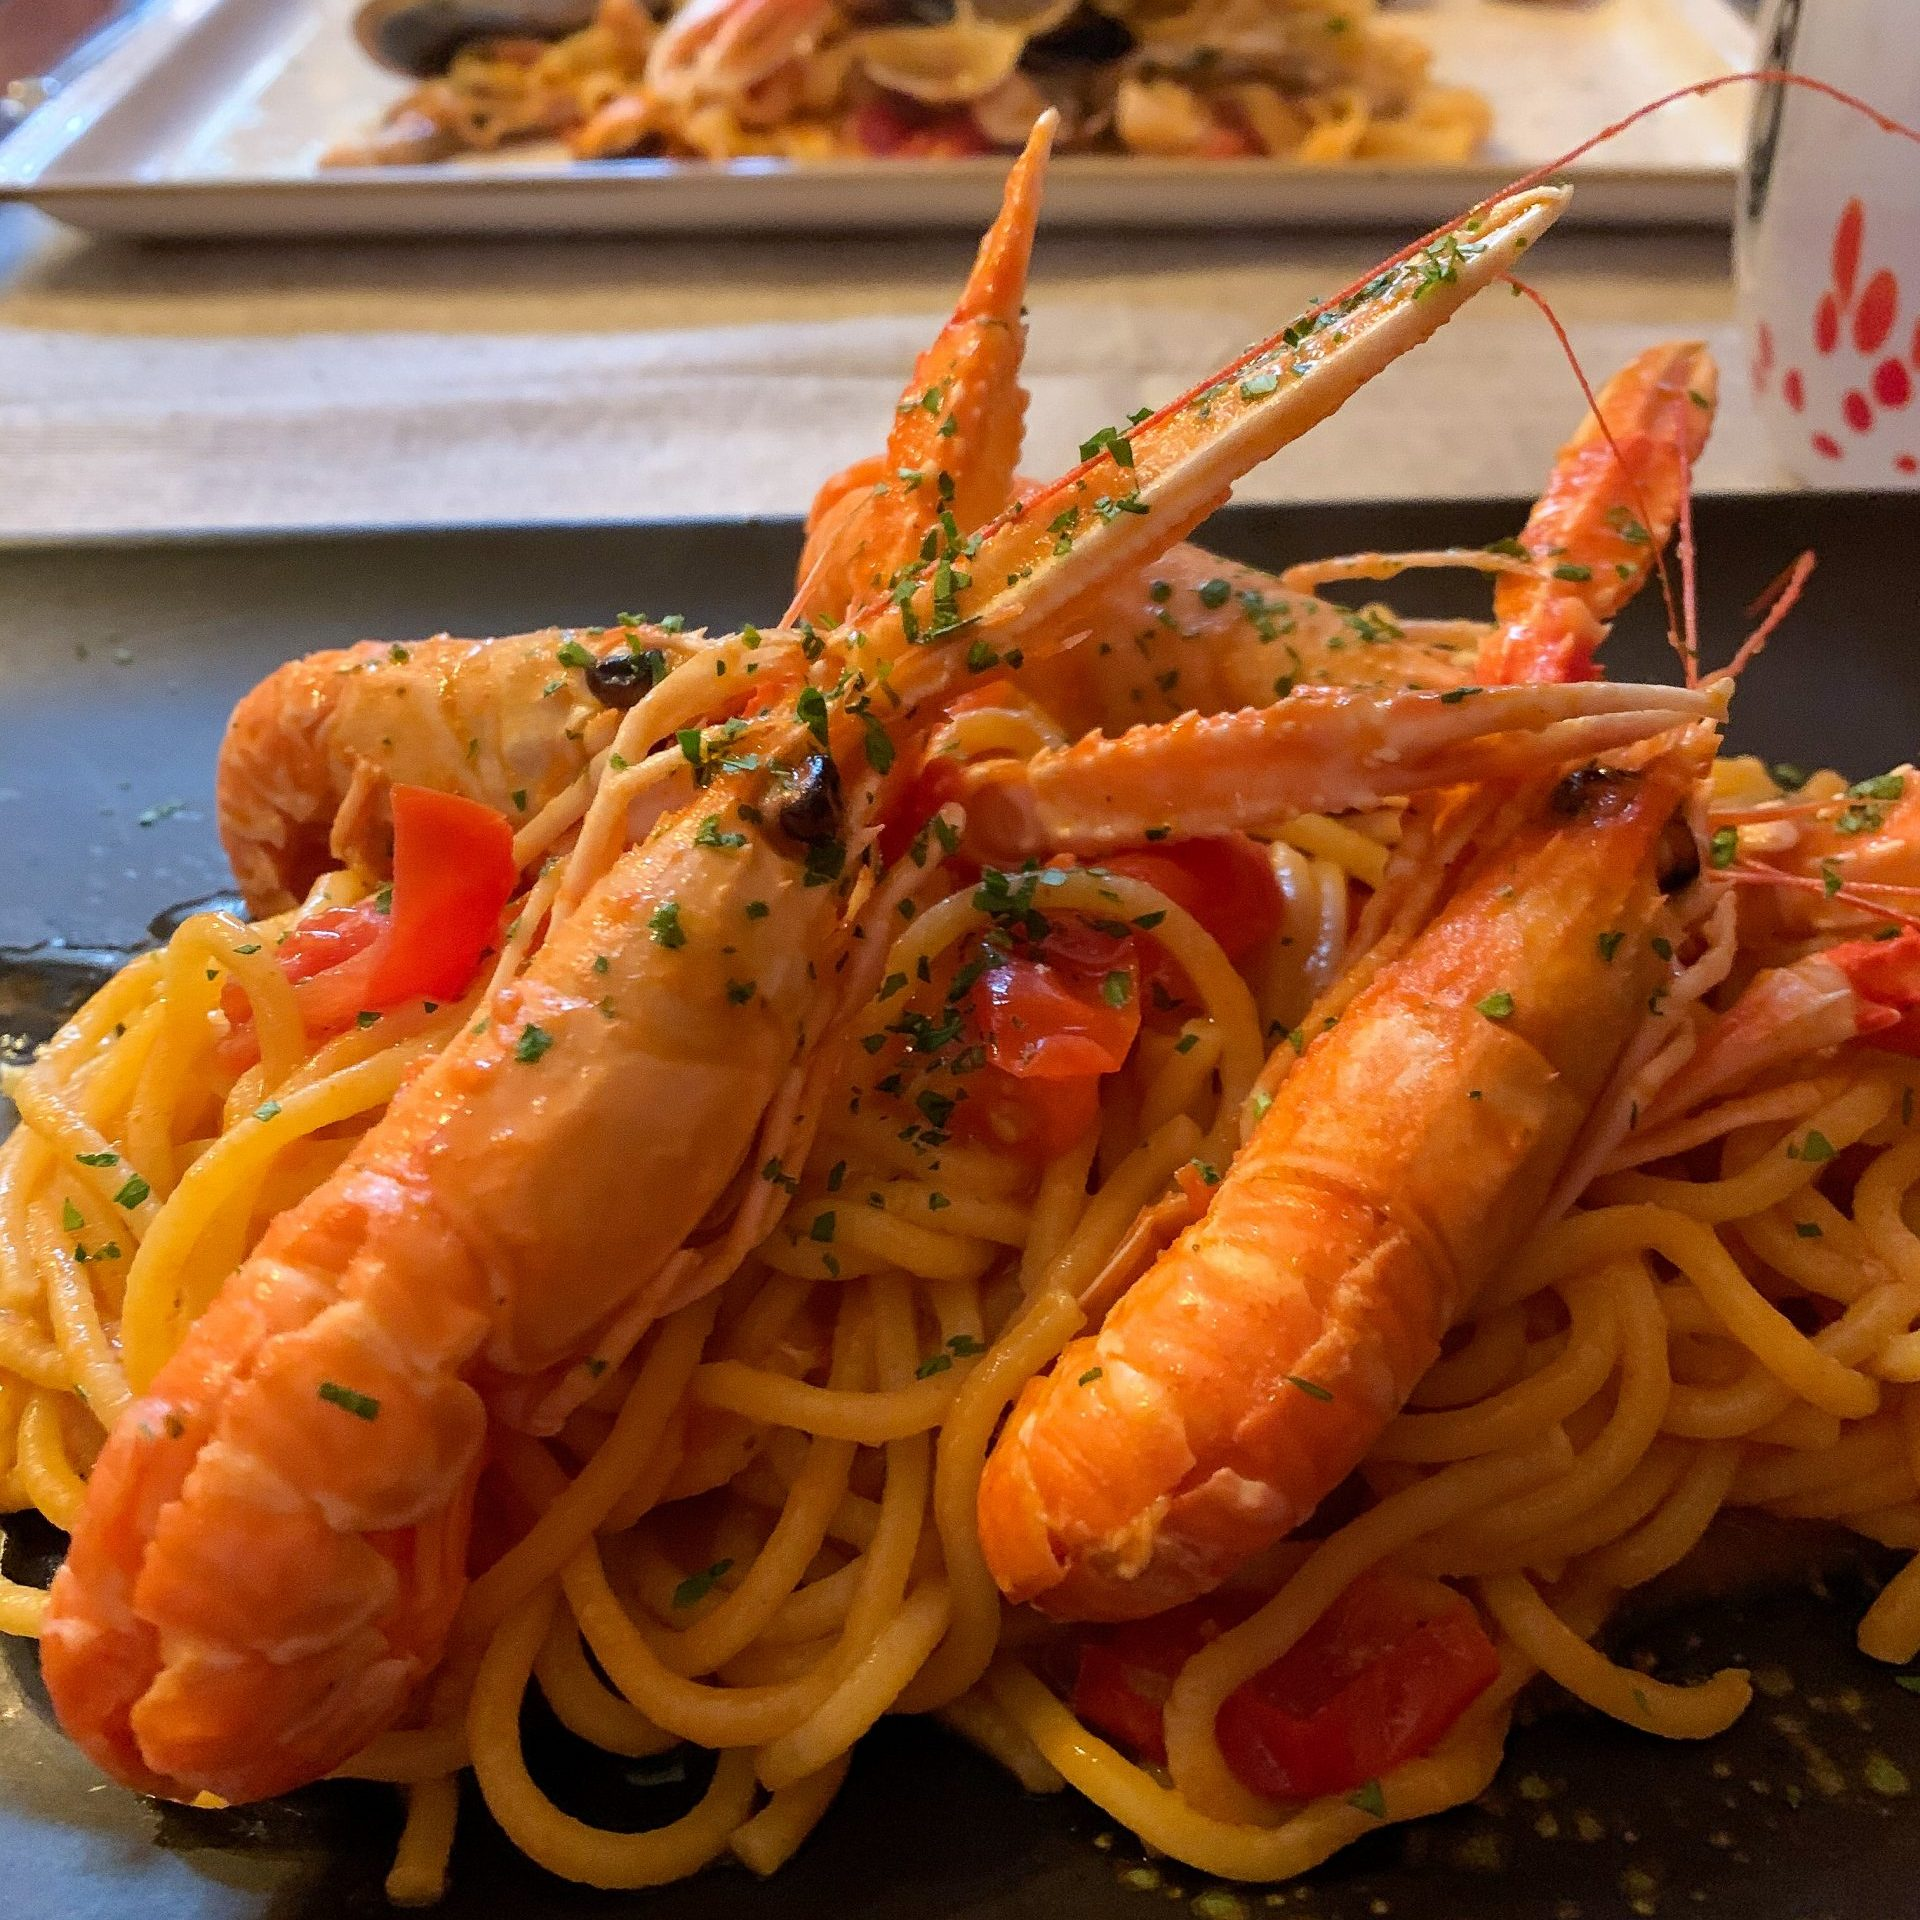 Here's where to start when looking for great food in Venice!